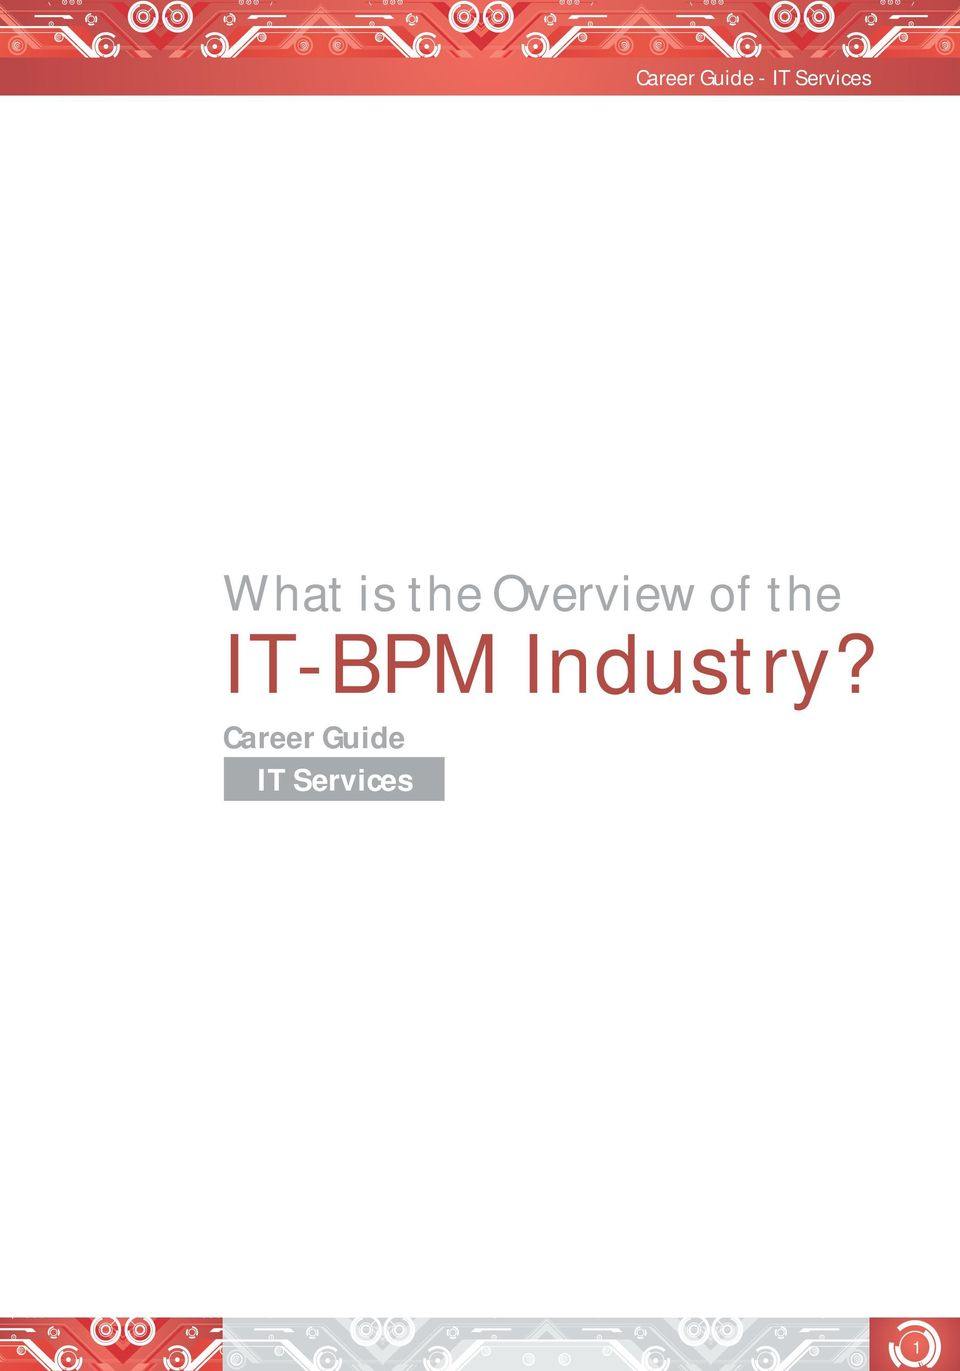 Overview of the IT-BPM